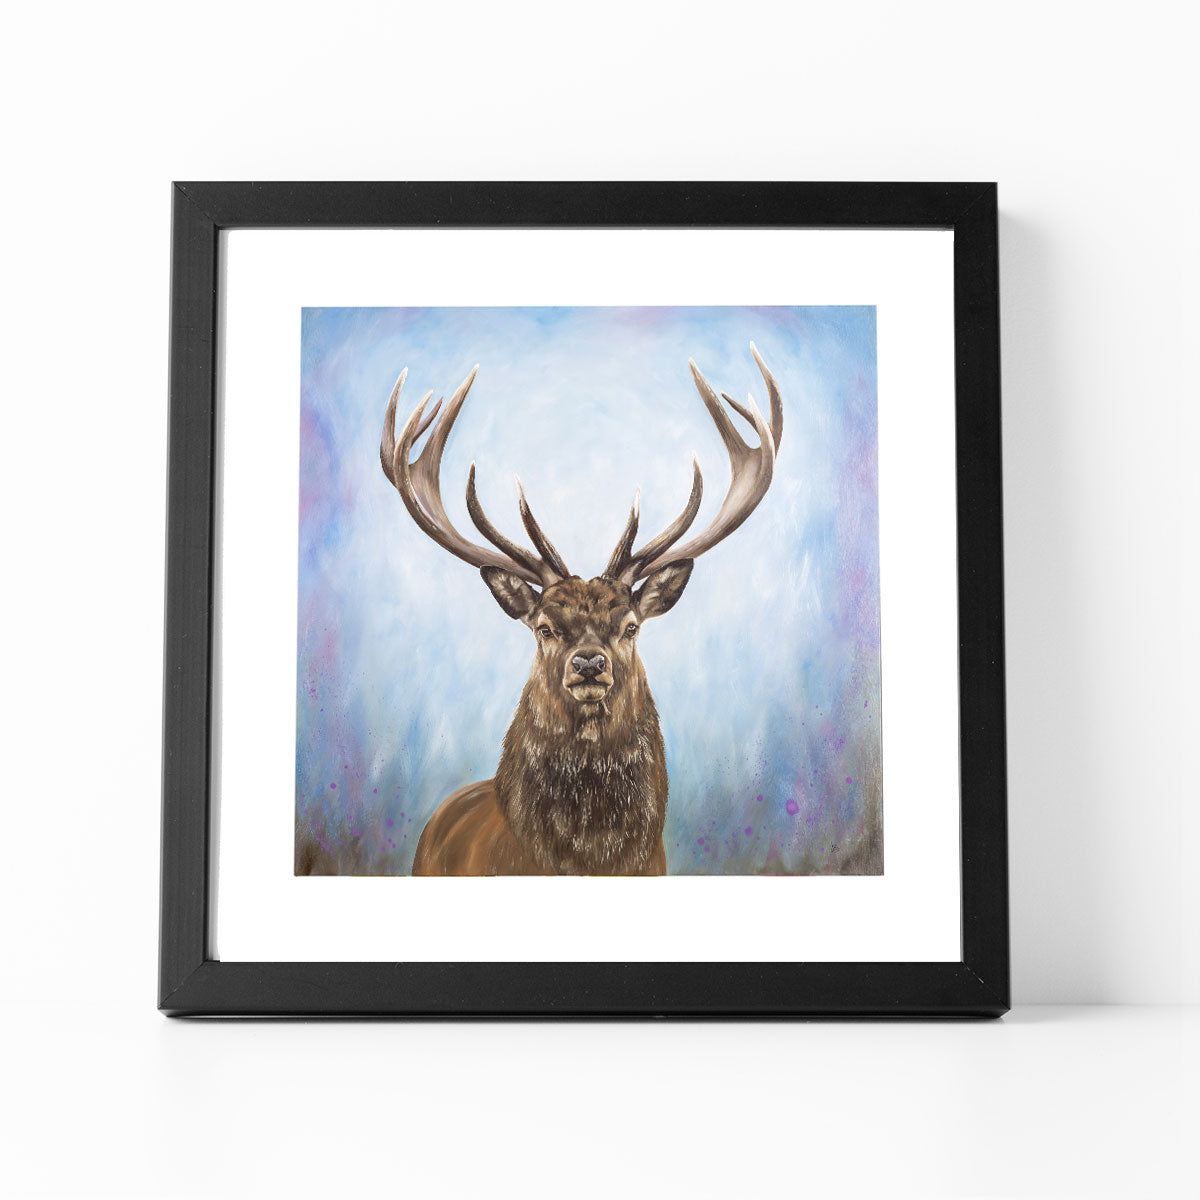 The Protector stag art print